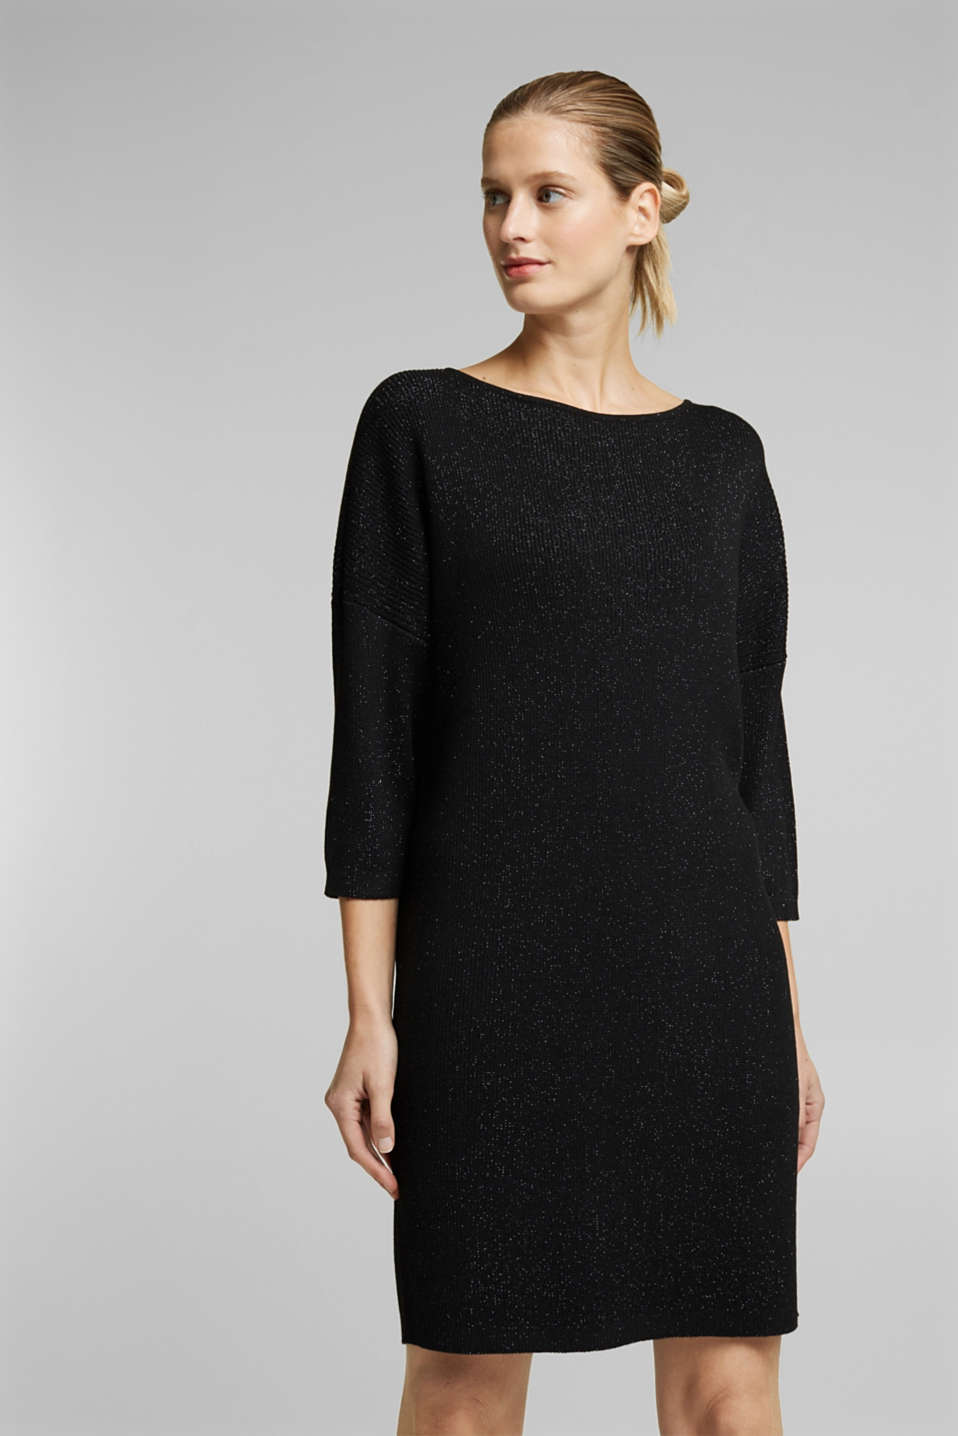 Esprit - Recycled: glittering knit dress